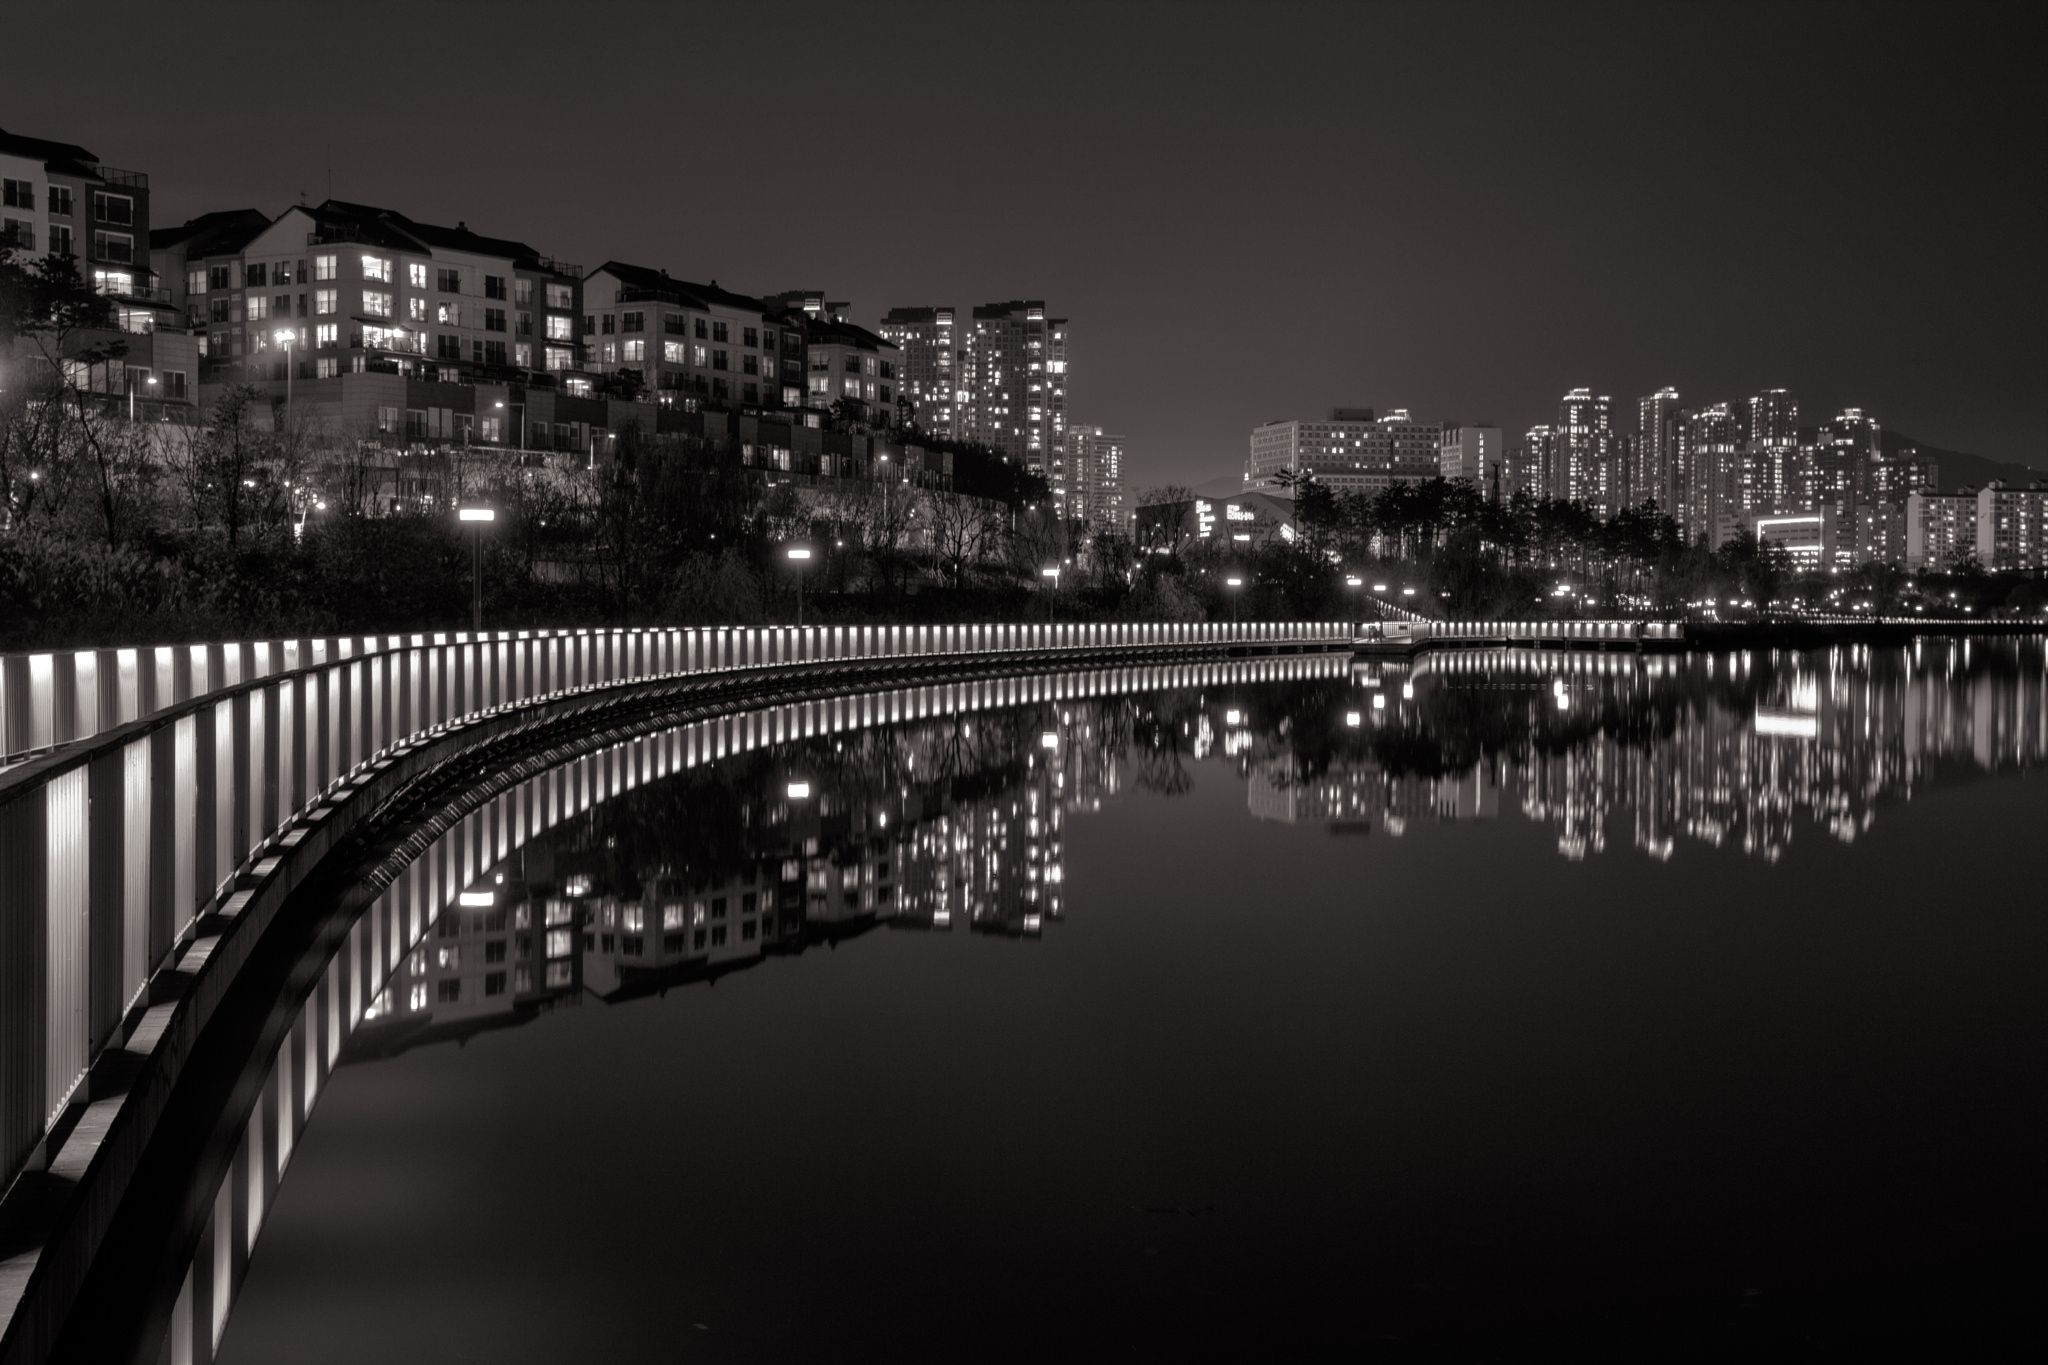 Night of lakeside by Joonyoung Kim on 500px -- am not a great fan of B&W photos; This photograph is a superb example of so many elements... lovely sideways arch of geometric interest, reflection separated from image which is reflected (great aspect), various sections with different light sources, hardness and softness... love it so much!